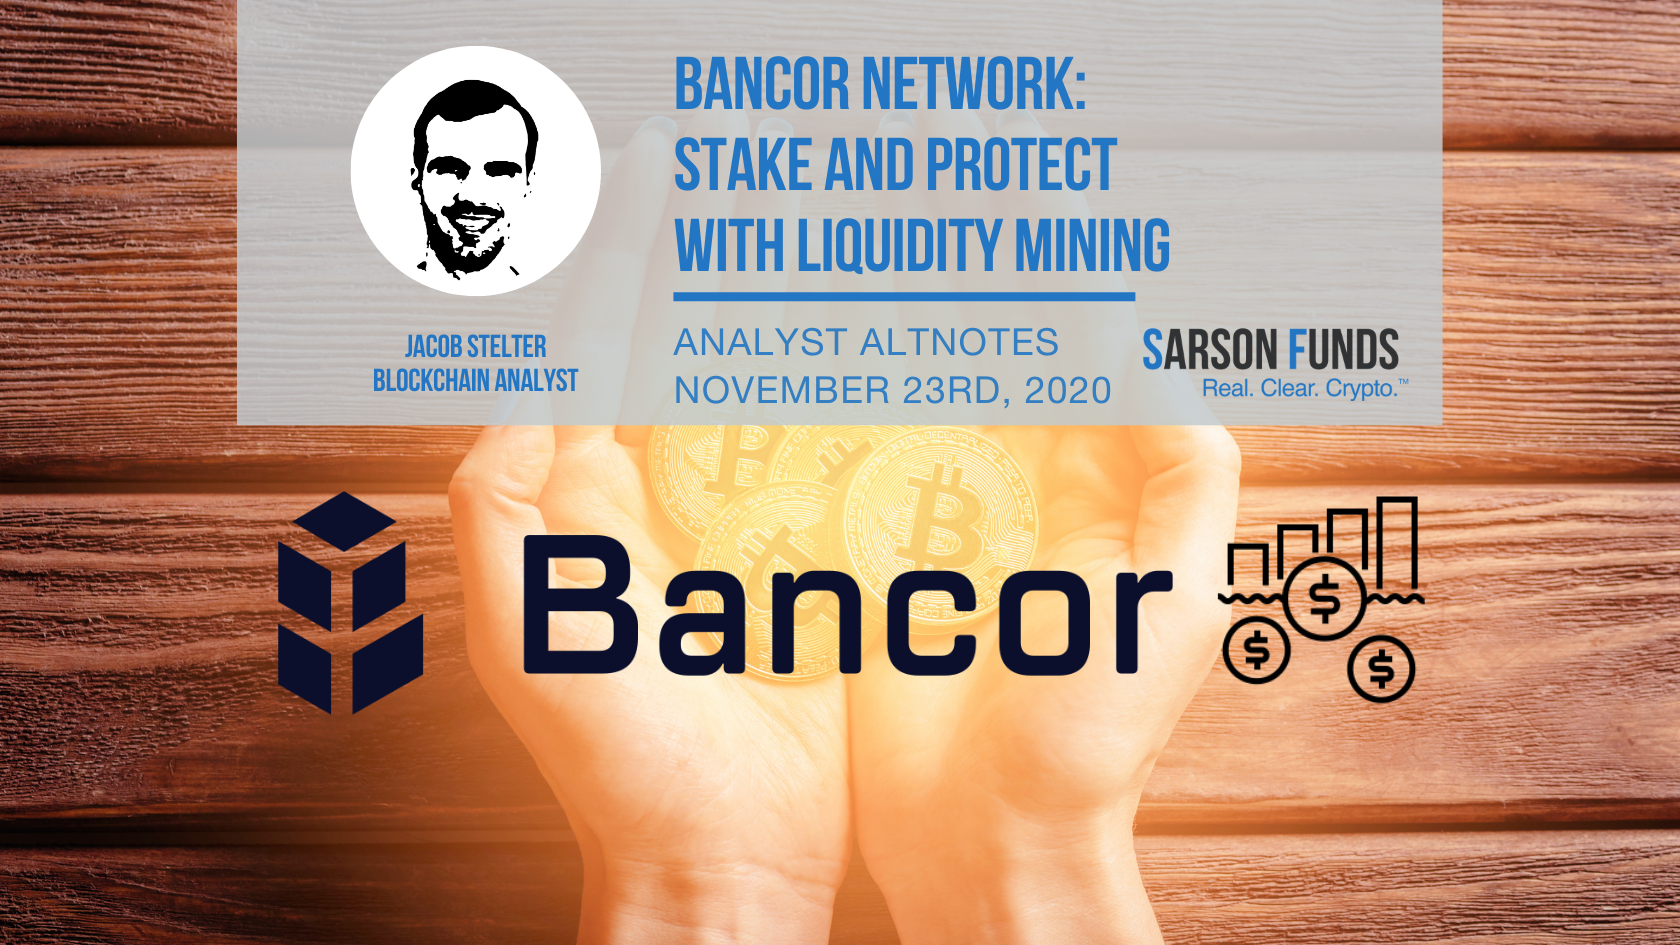 Bancor Network Provides Liquidity for Yield Farmers